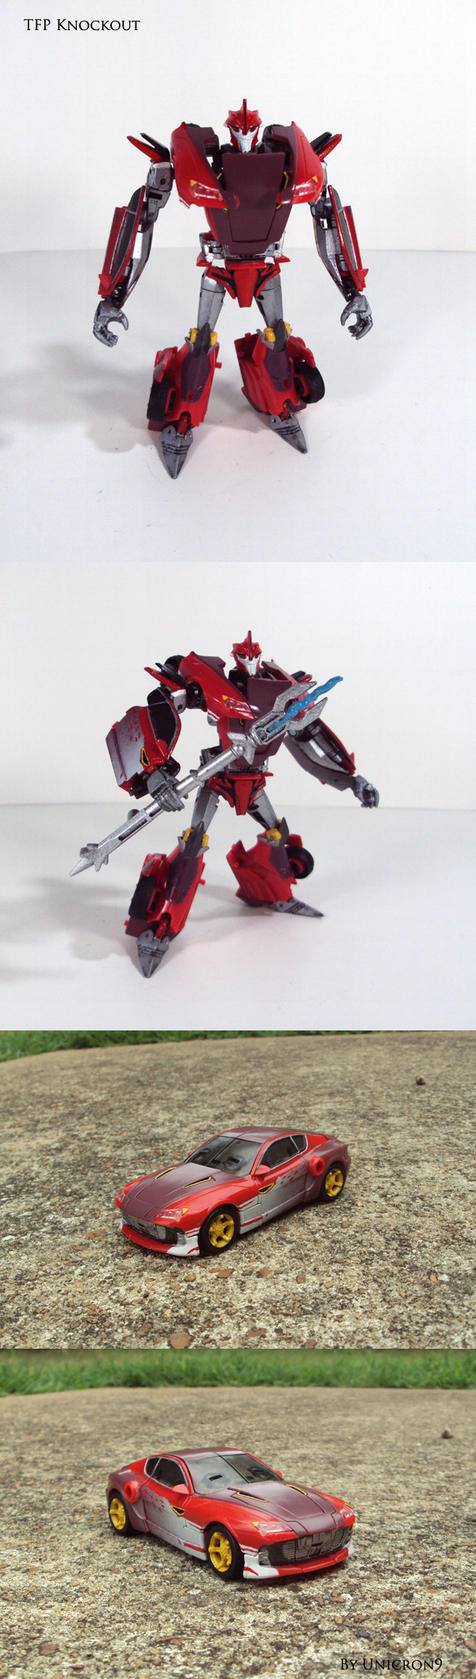 Transformers Prime Knockout by Unicron9 on DeviantArt